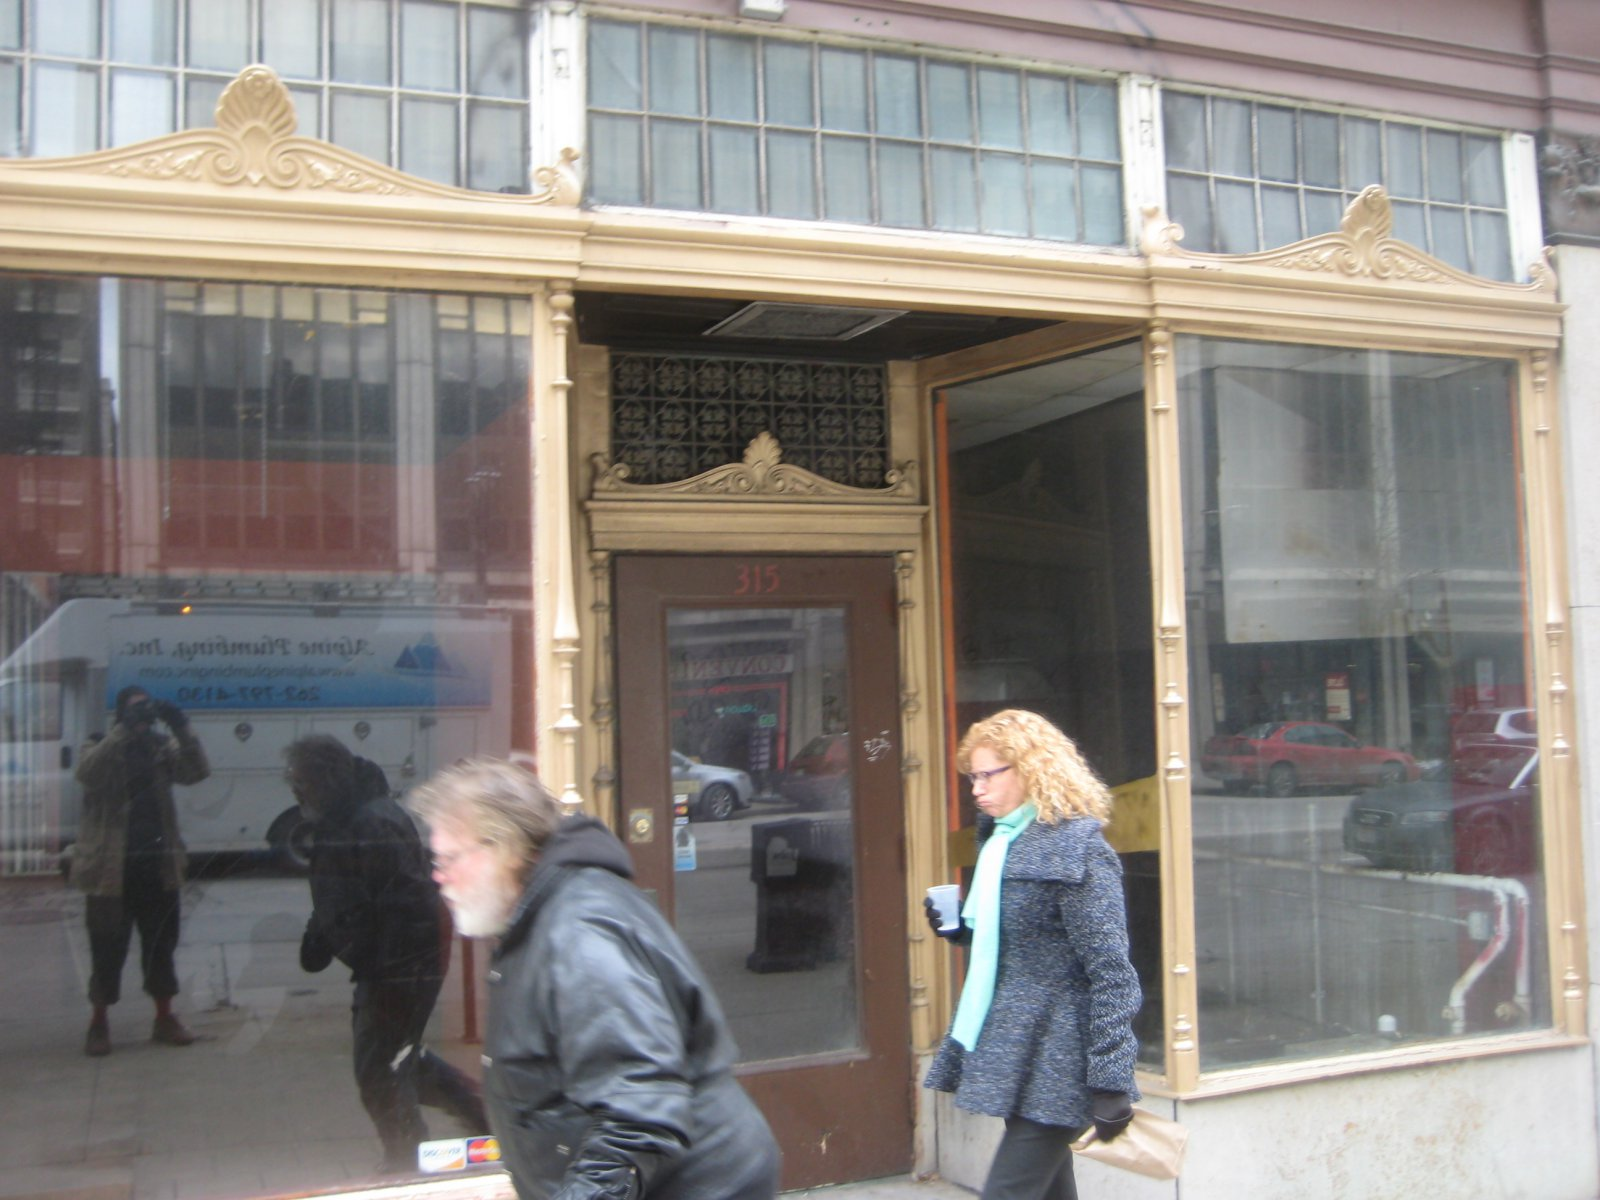 The new home of Amilinda restaurant on E. Wisconsin Ave